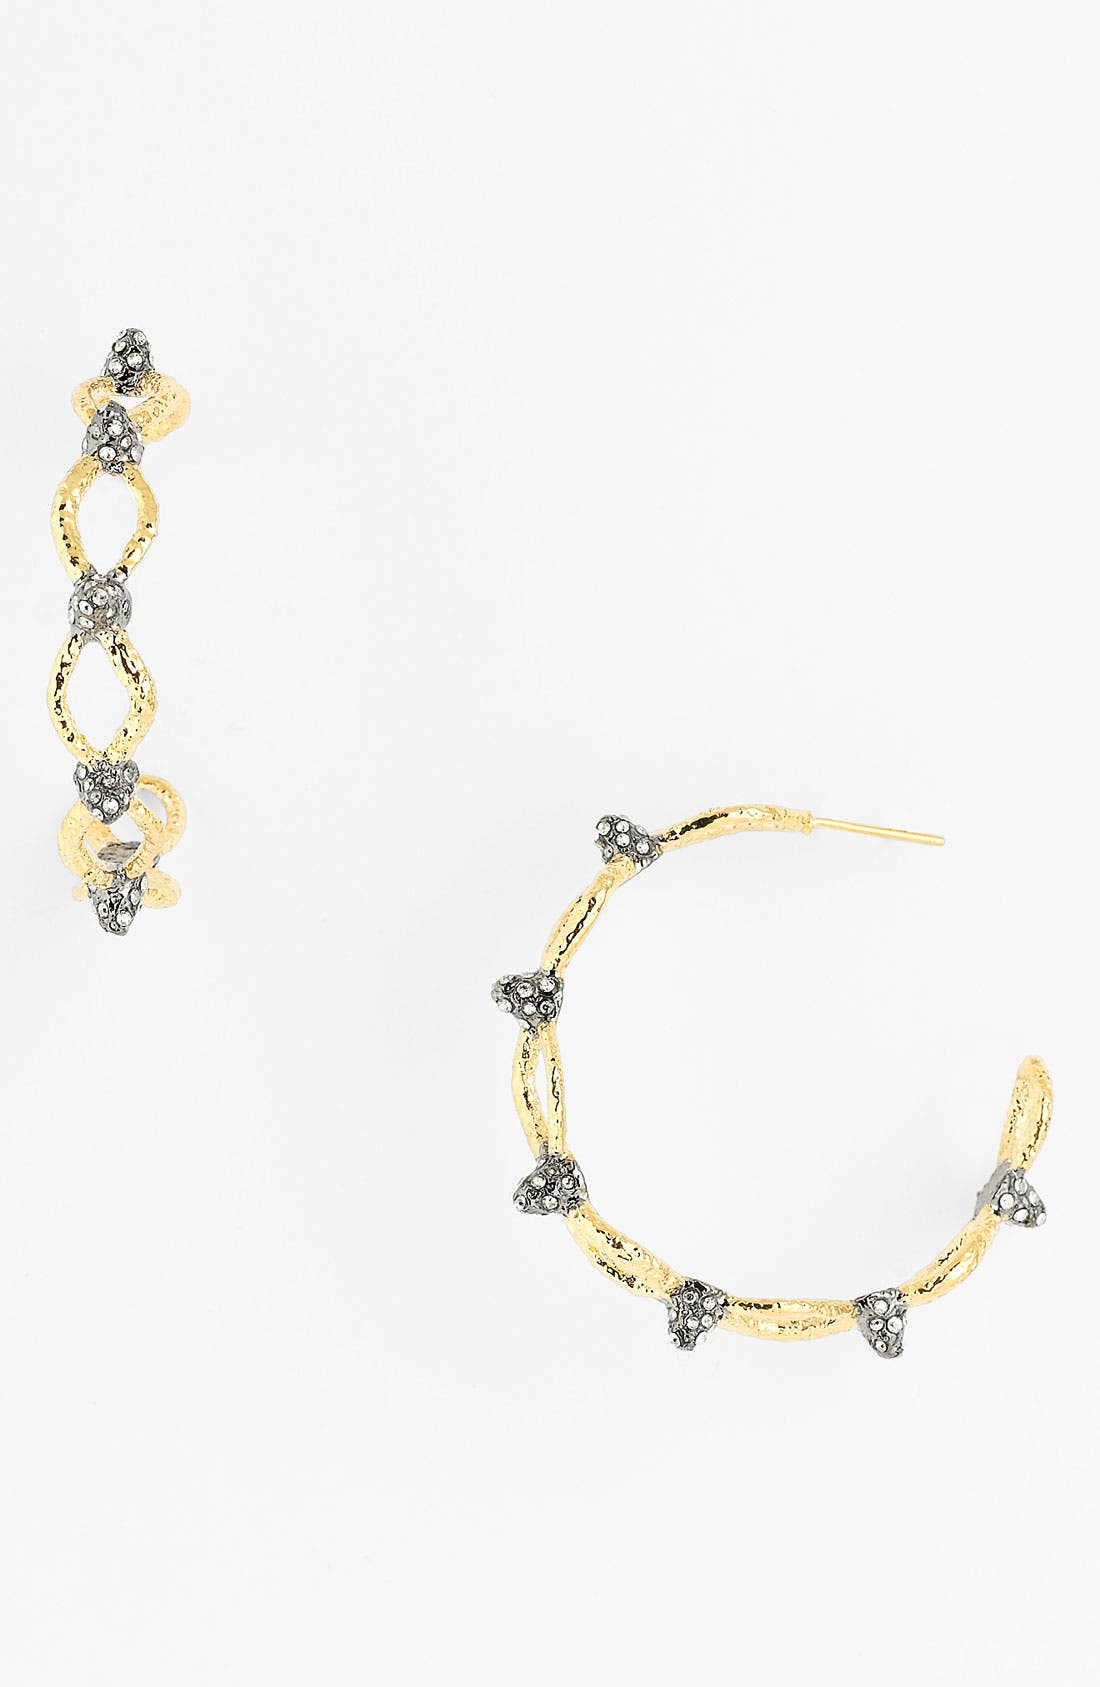 Alternate Image 1 Selected - Alexis Bittar 'Elements - Siyabona' Spiked Woven Hoop Earrings